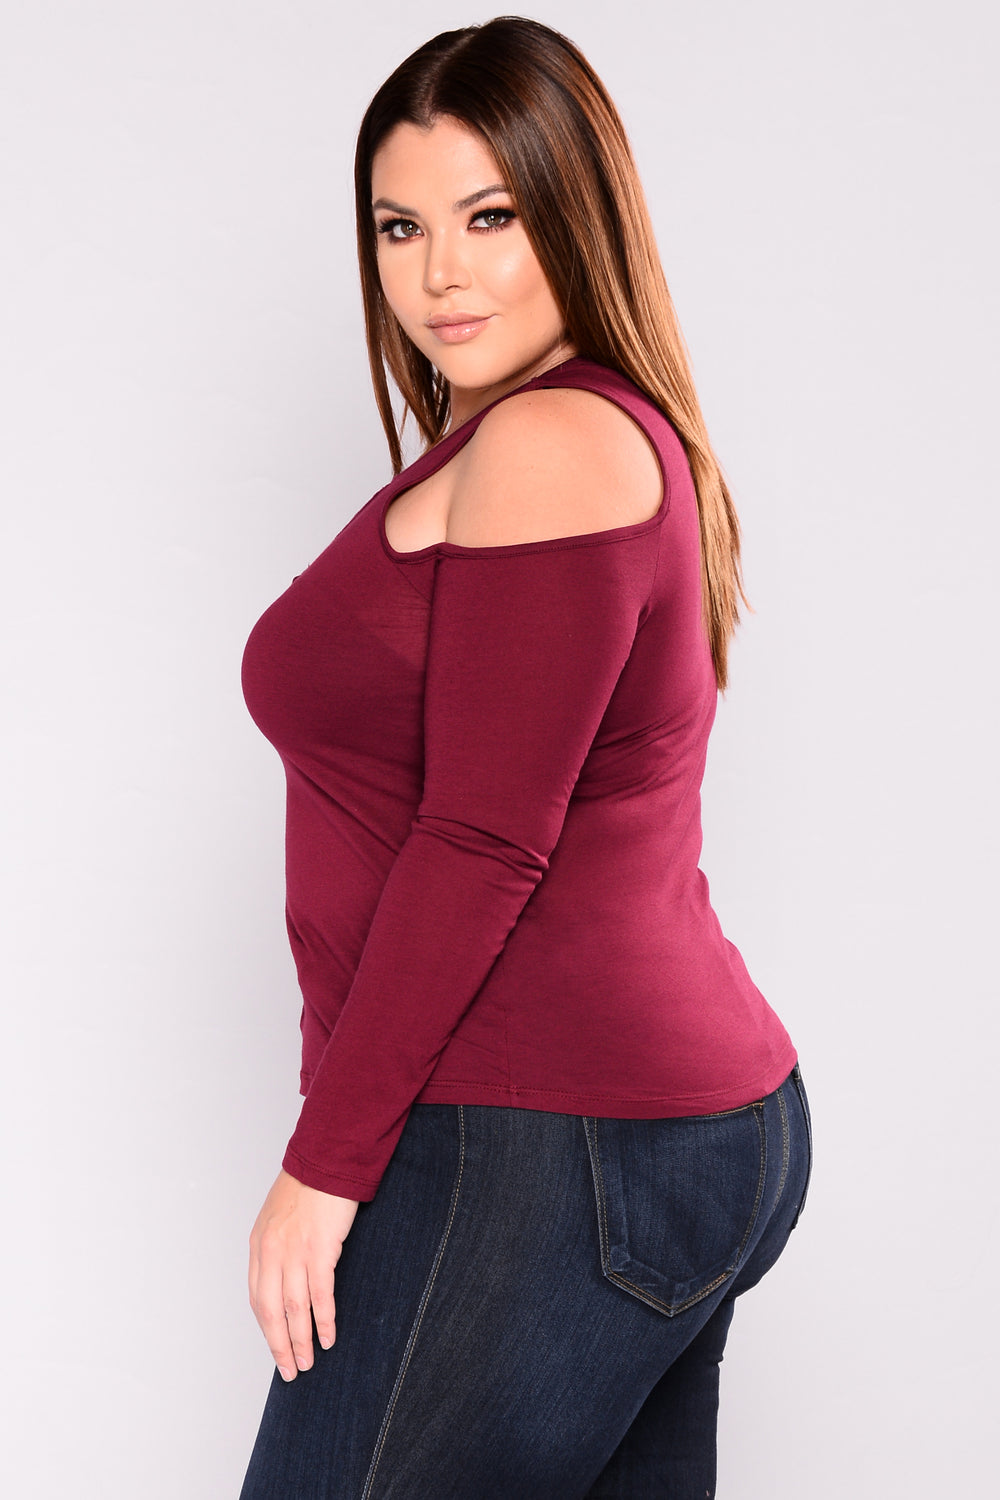 Milano Lace Up Top - Burgundy